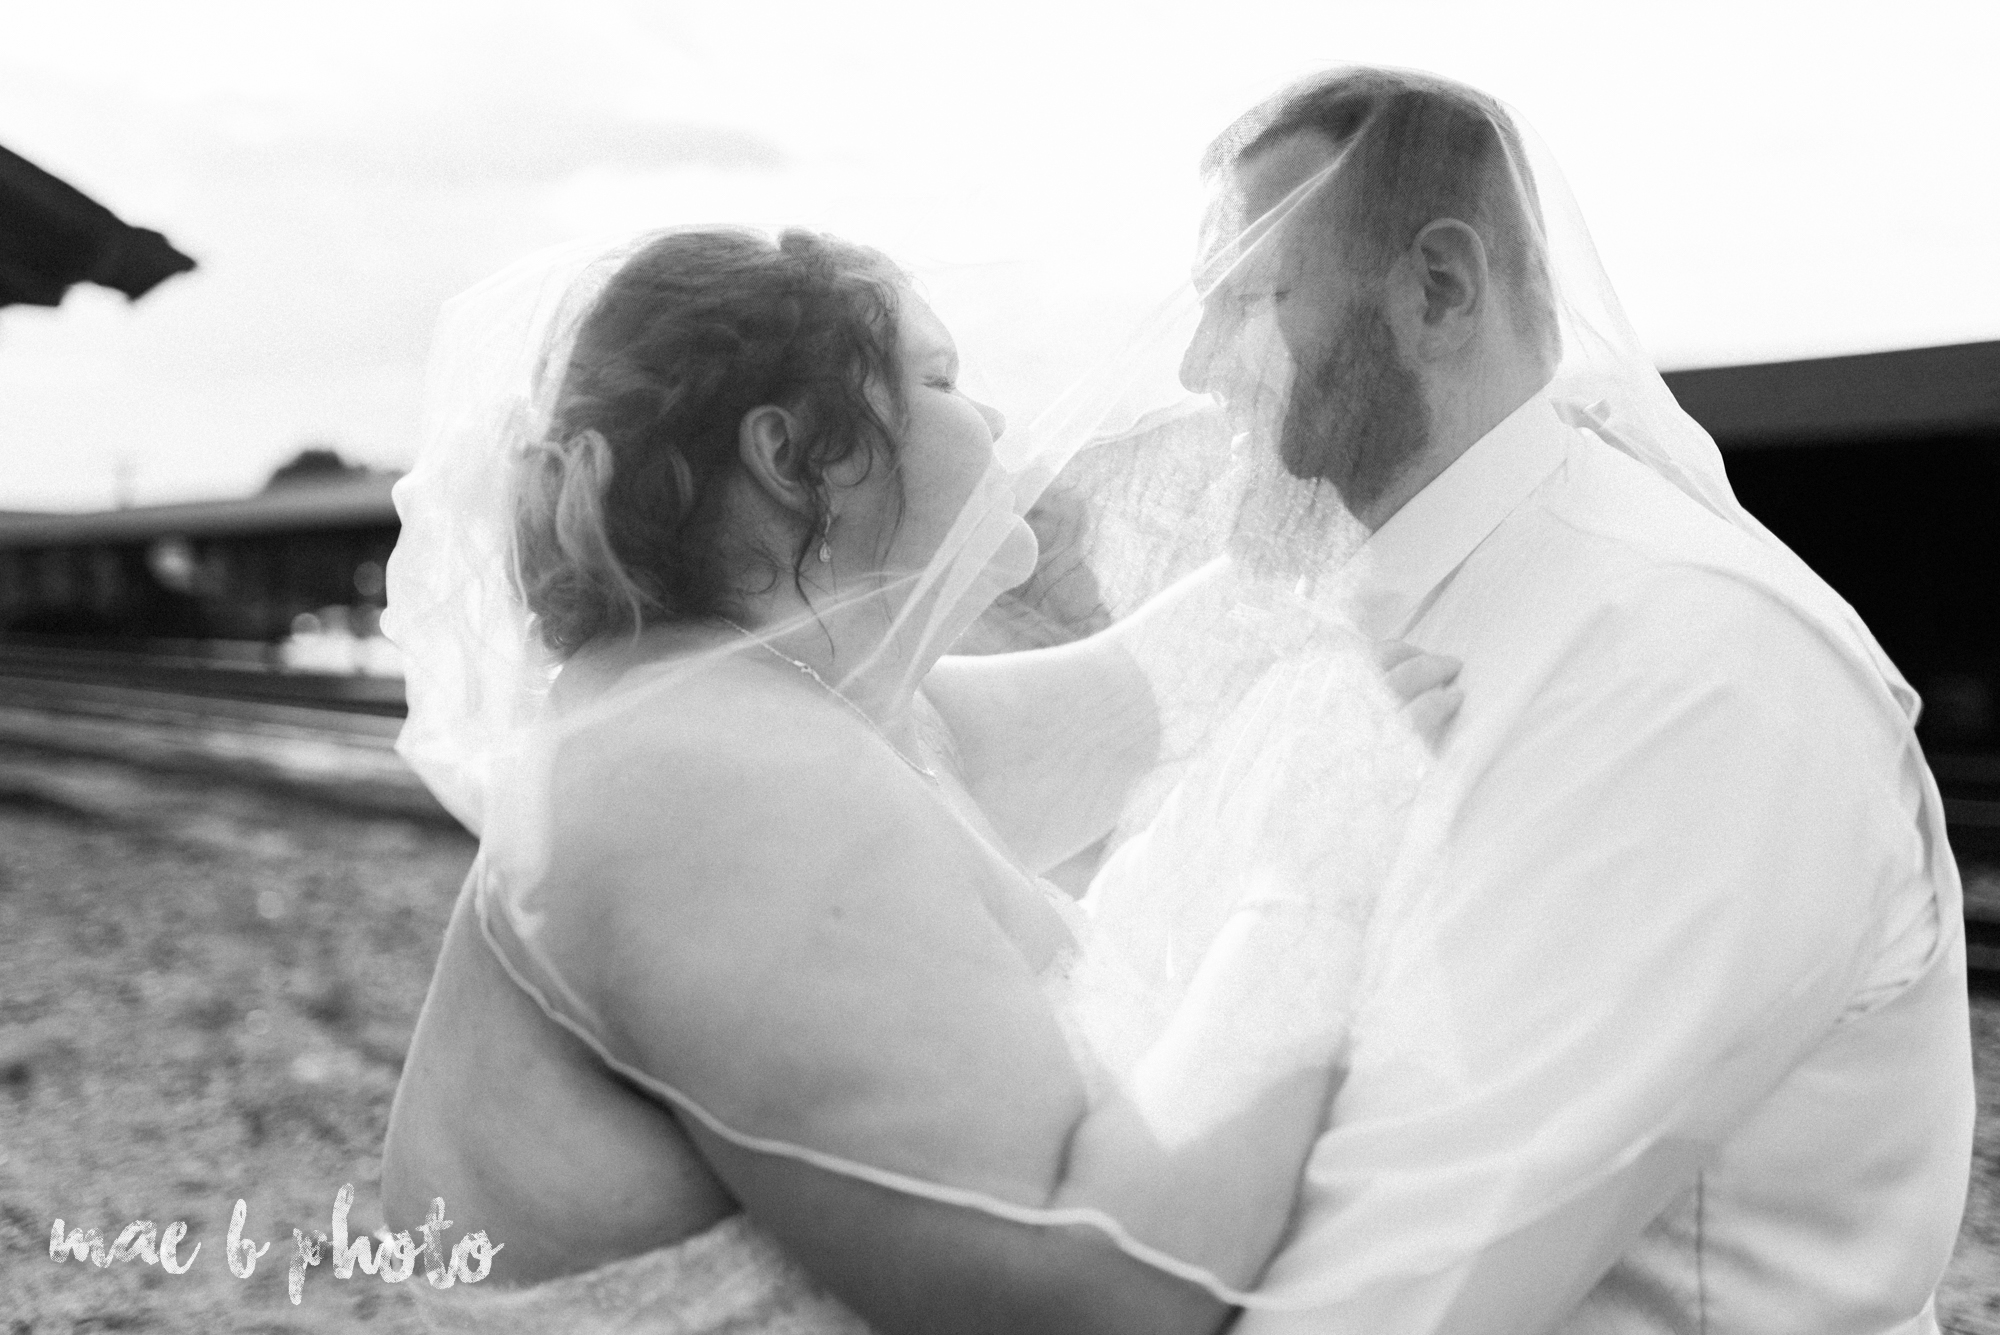 Kristina and ryan's personal vintage glam fall wedding at disalvo's station restaurant and the arnold palmer latrobe country club in latrobe, pa photographed by youngstown wedding photographer mae b photo-66.jpg